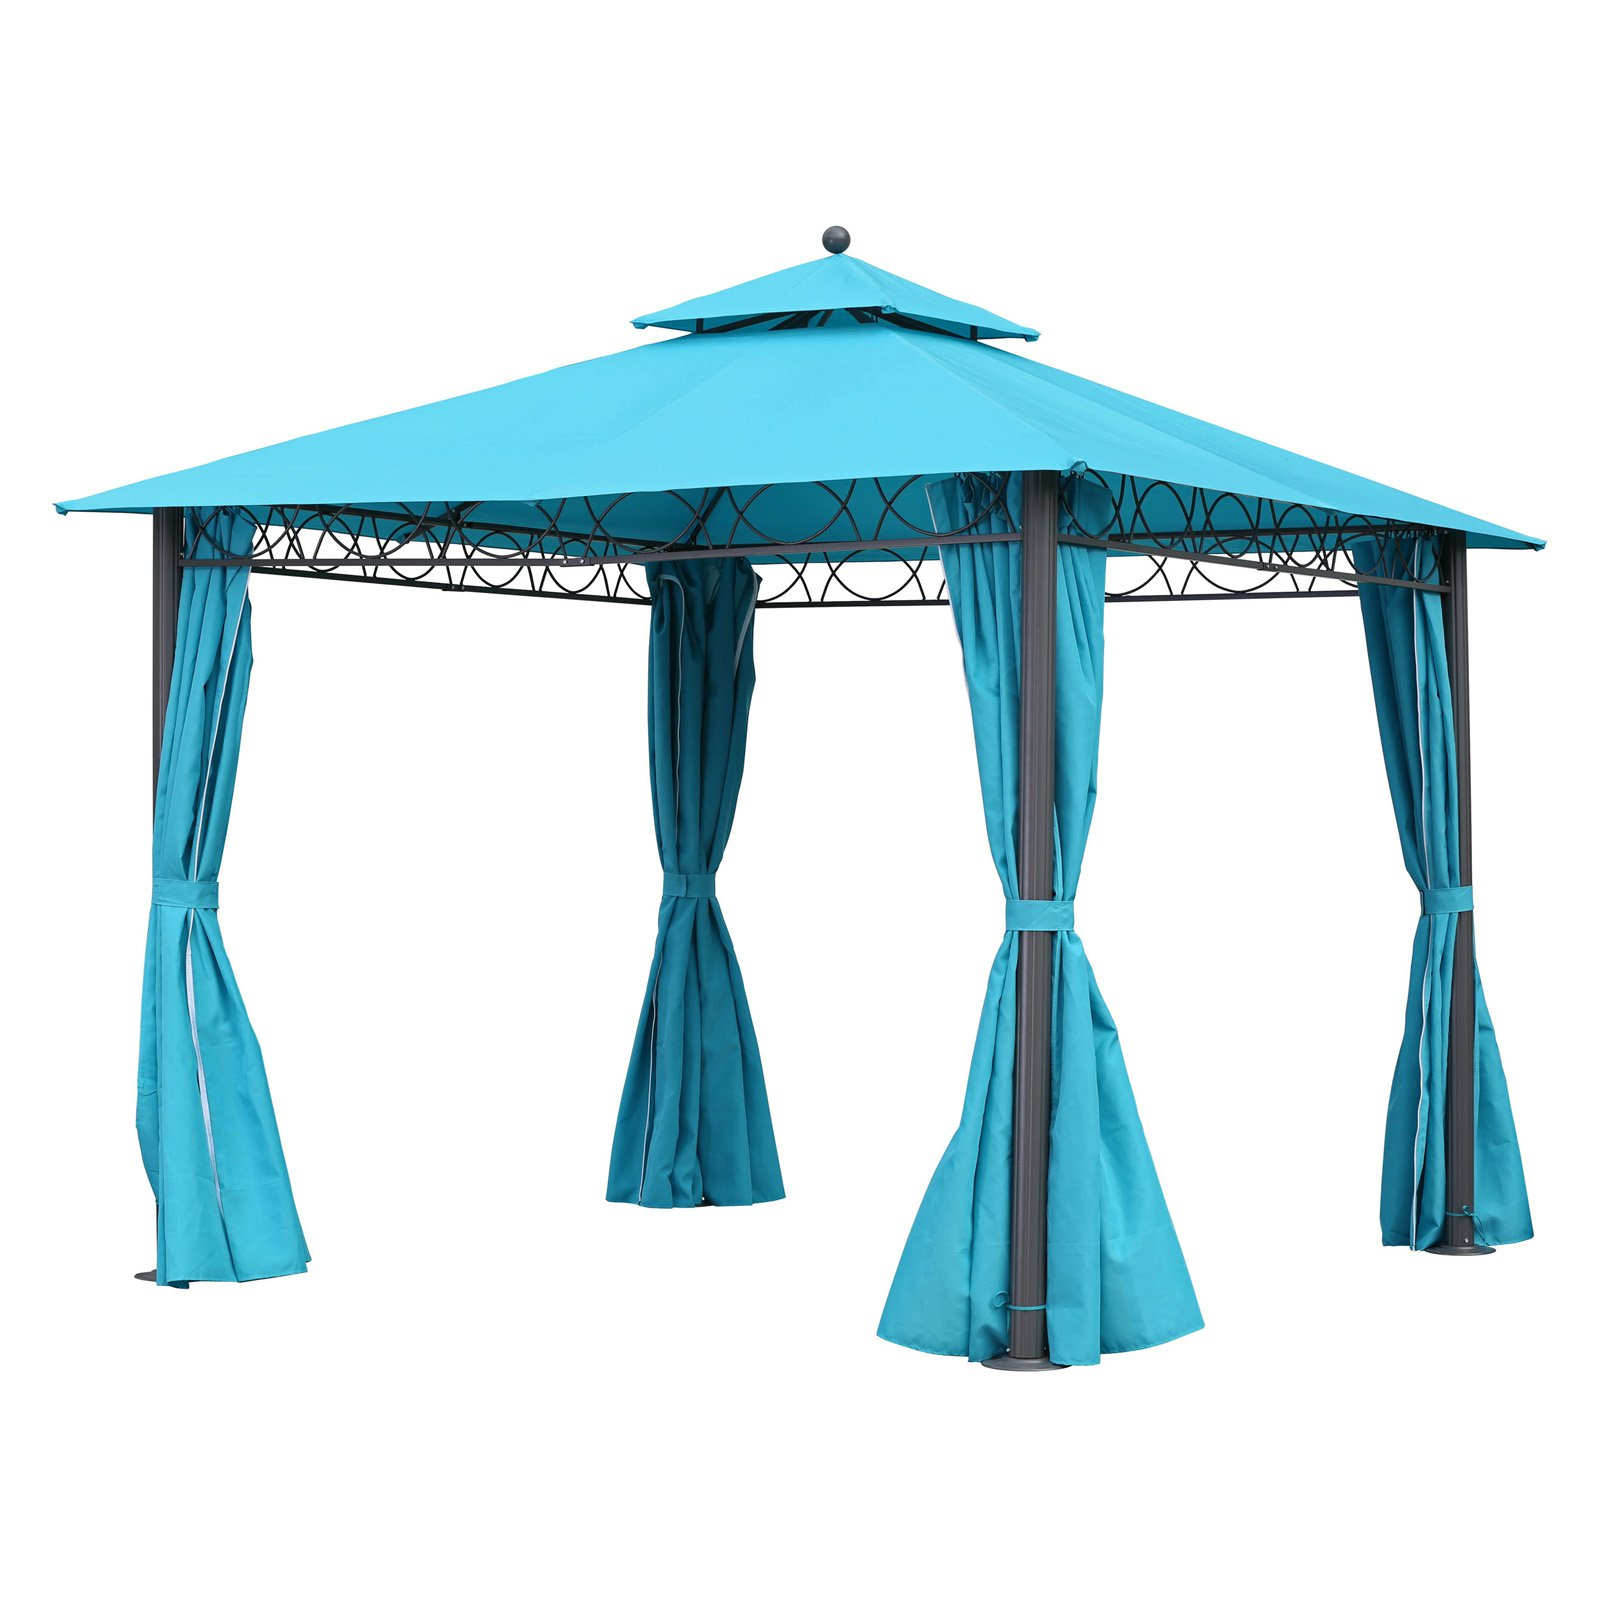 International Caravan St. Kitts 10 ft. Aluminum Double Vented Outdoor Gazebo by International Caravan